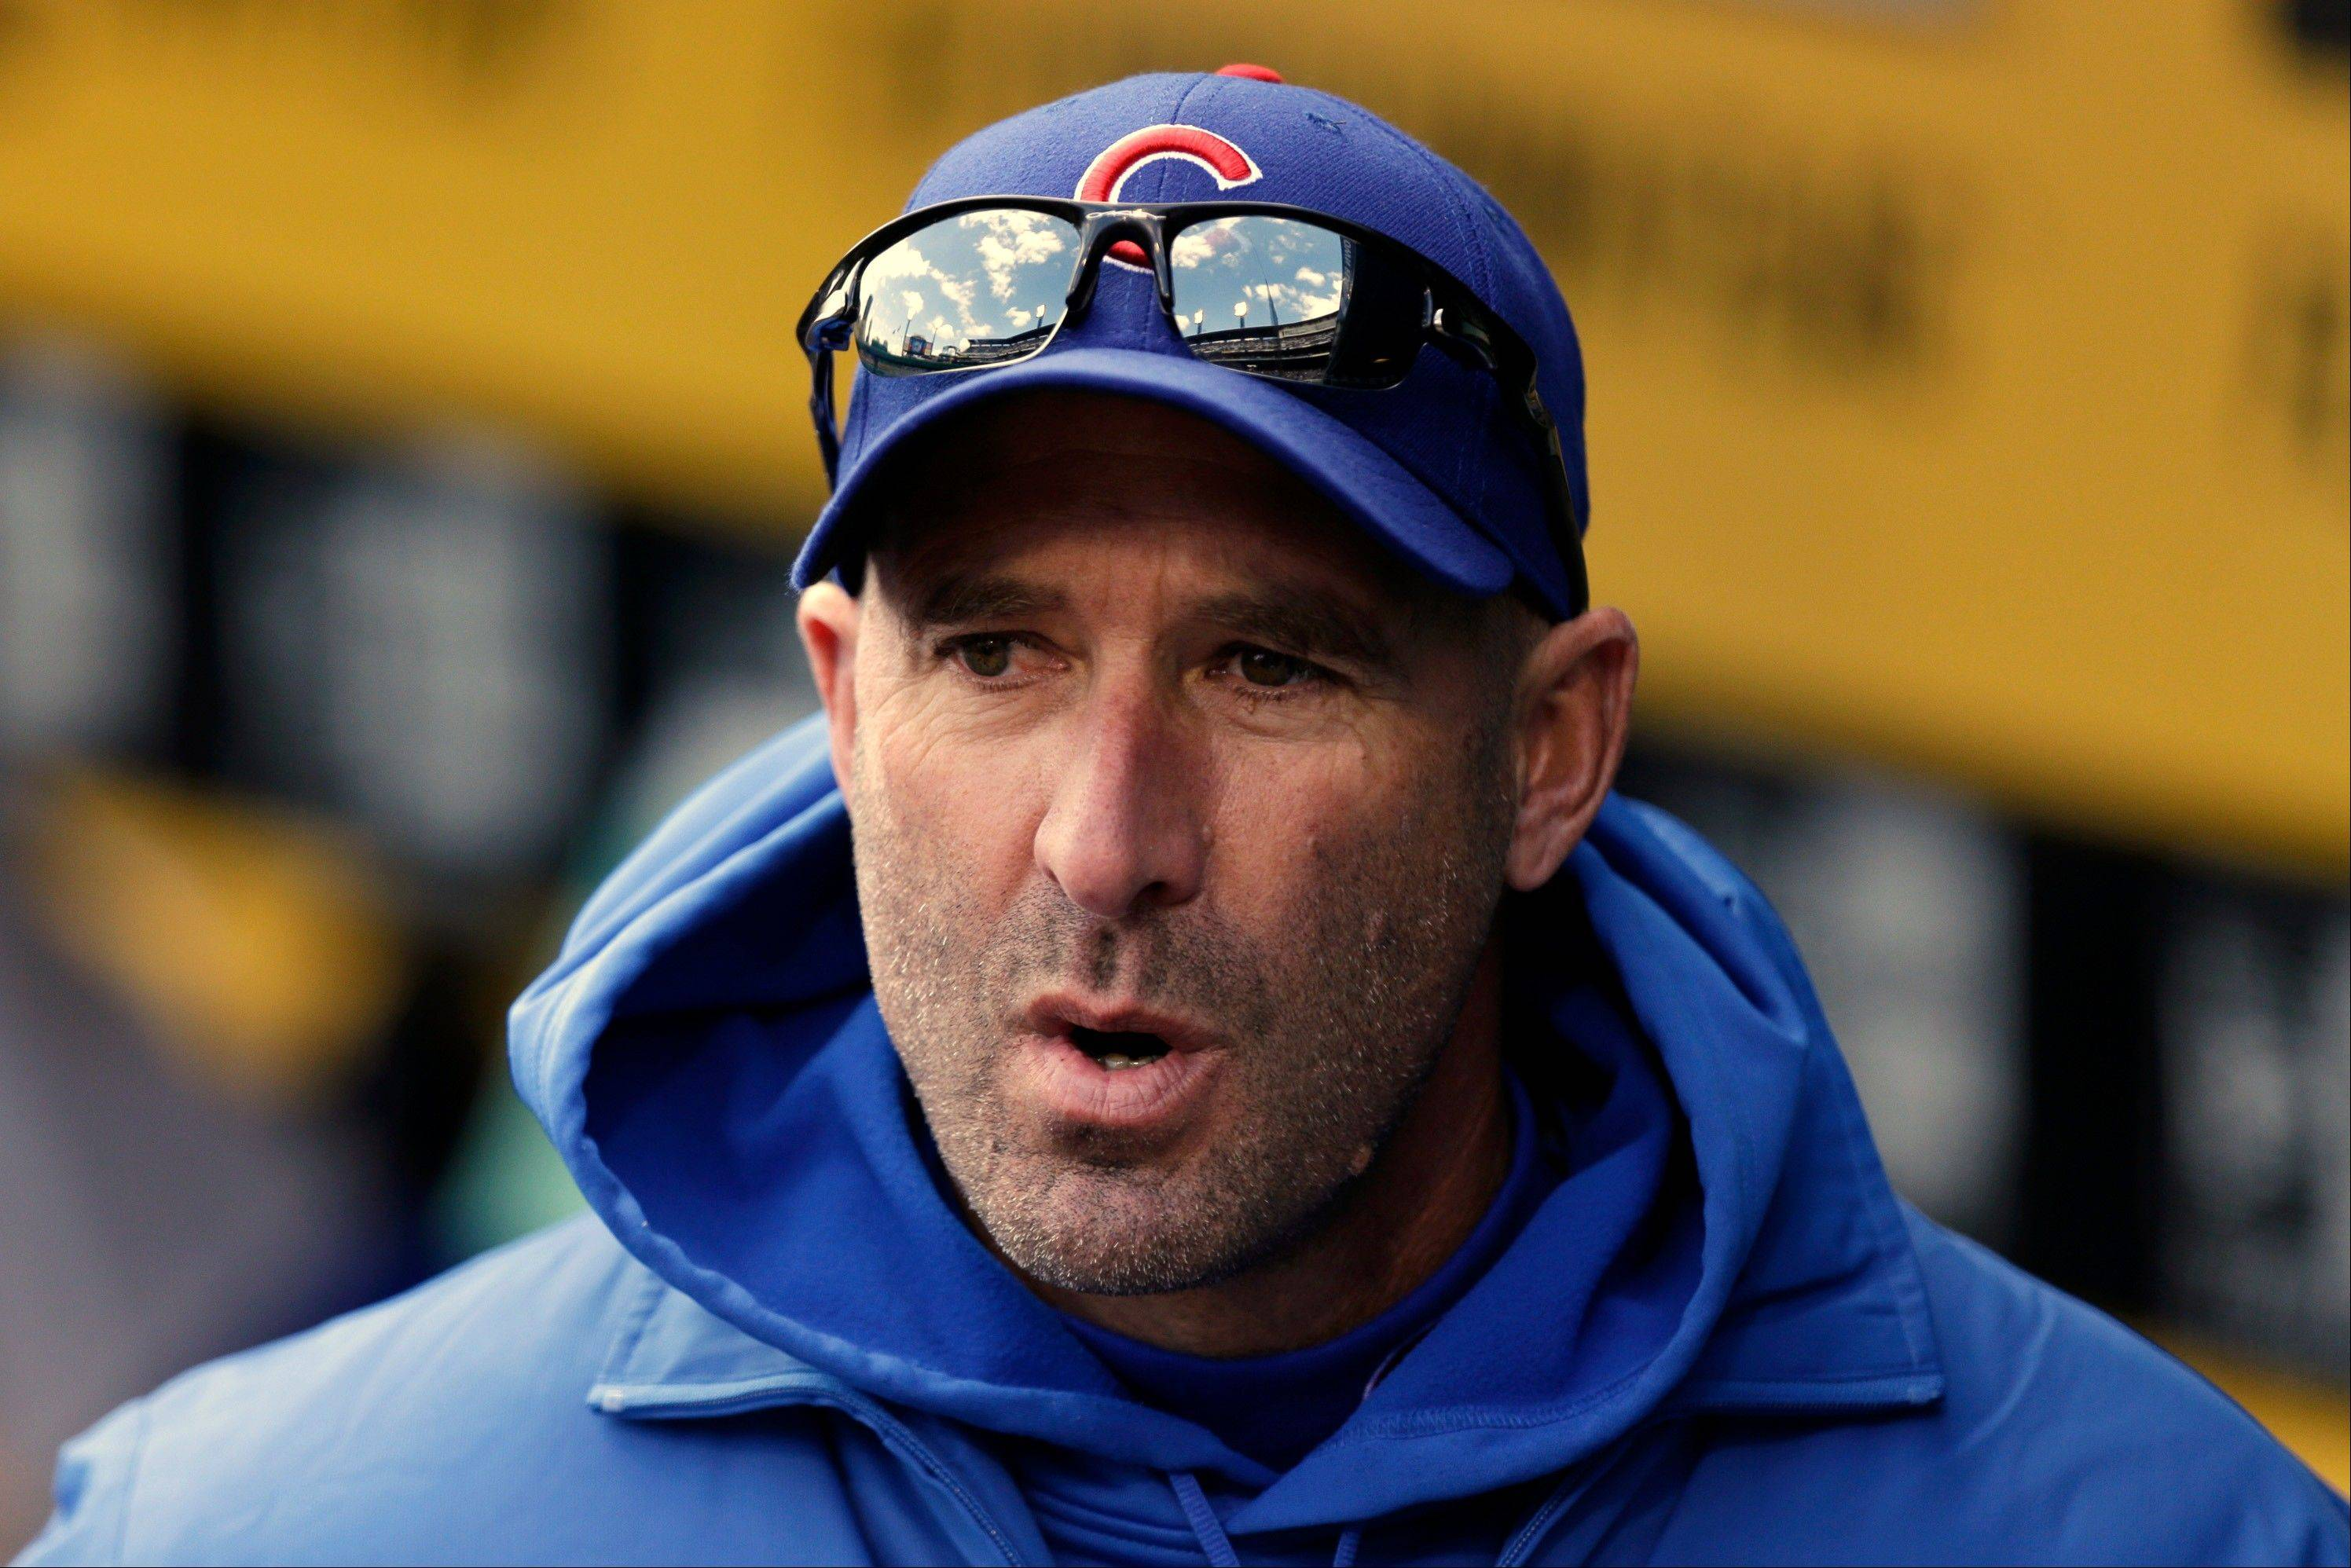 Cubs manager Dale Sveum prefers the advantages of the National League game over following the American League�s DH rule.